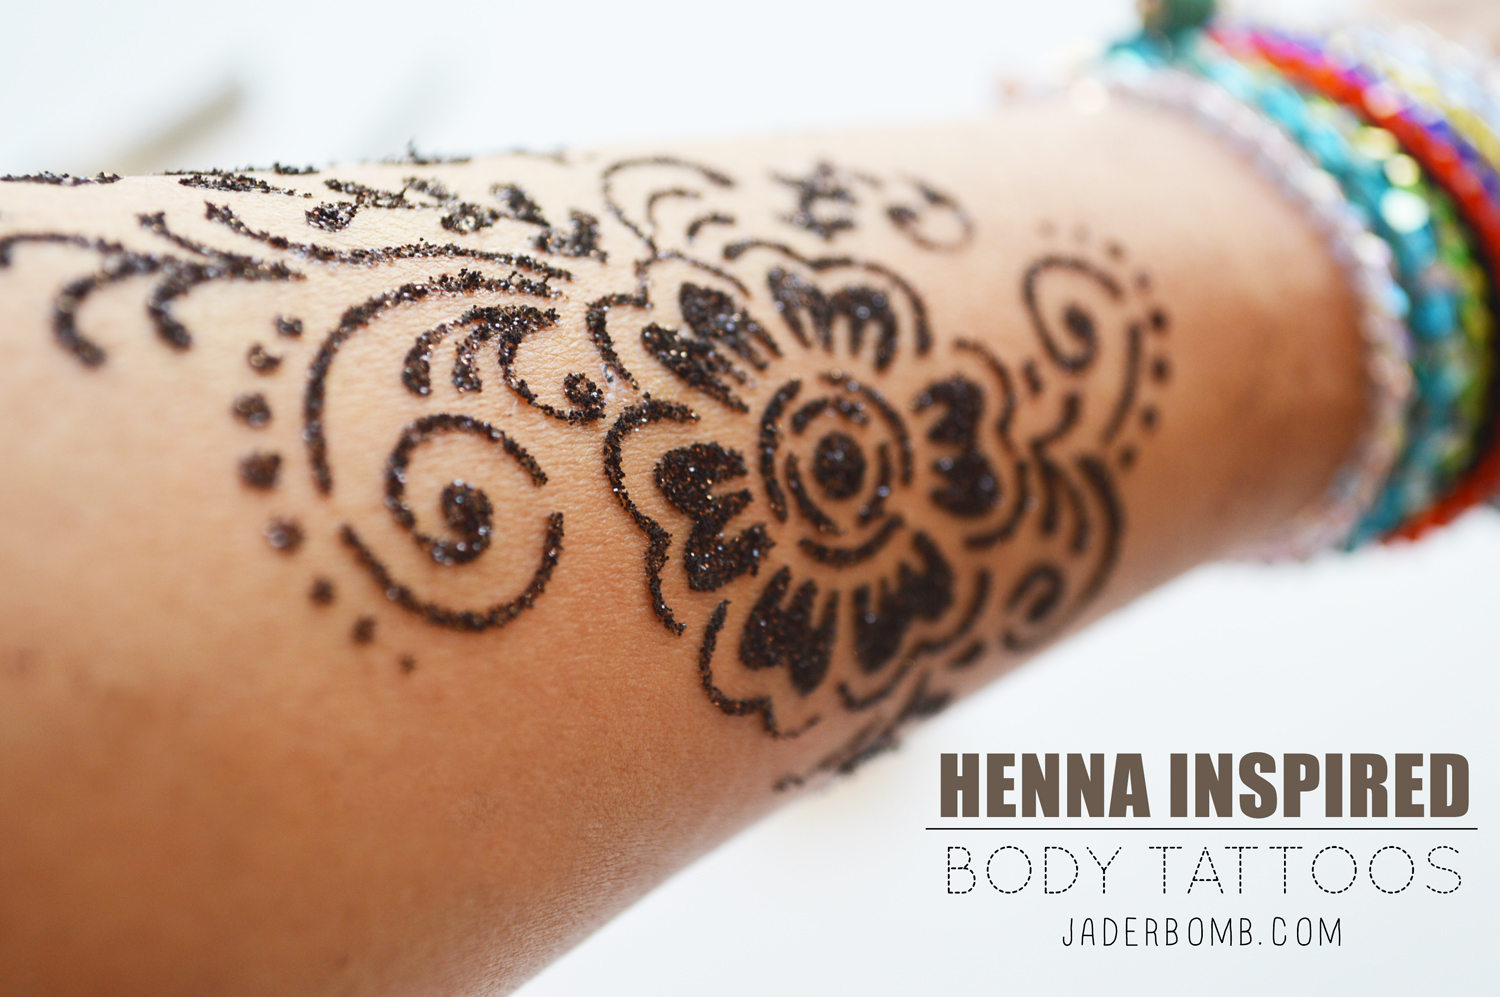 Henna Tattoo Tutorial : Henna inspired body tattoos jaderbomb